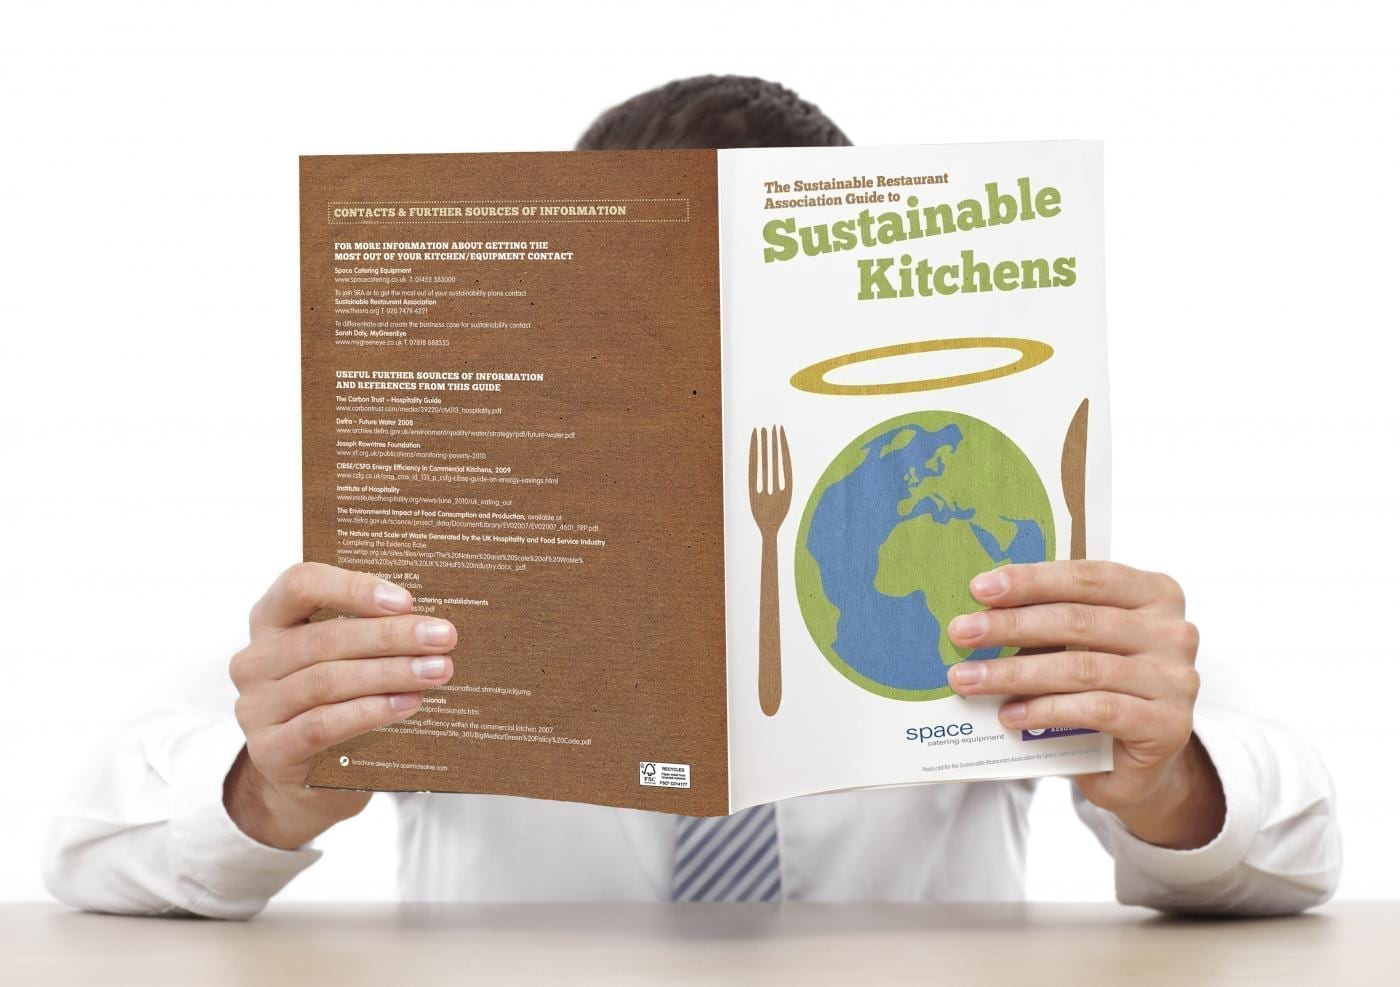 Sustainability Magazine - Have you got yours